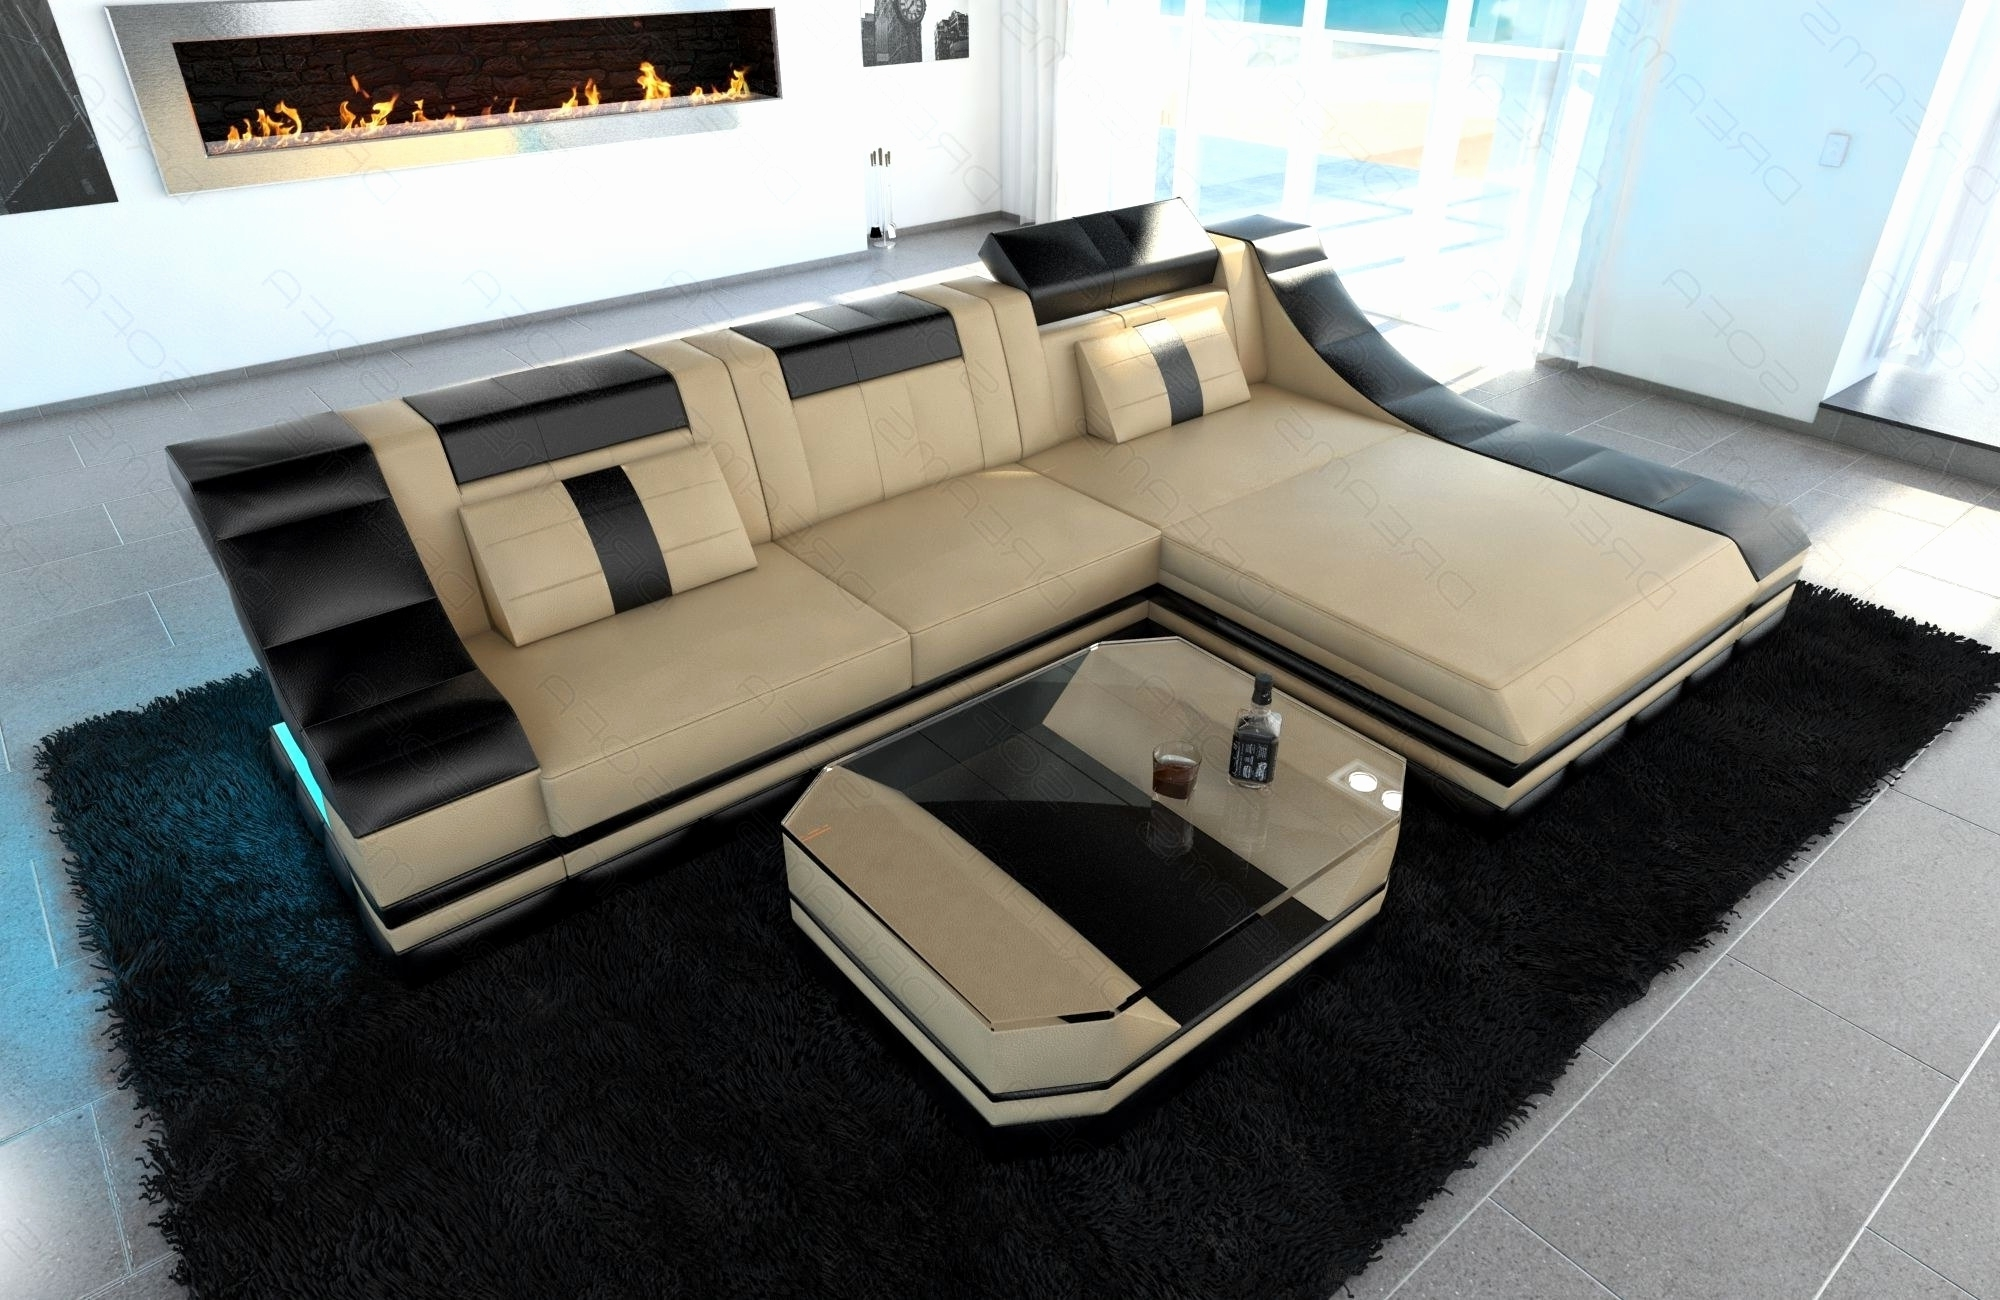 Luxury Sectional Sofas Inside Most Popular Luxury Small Sectional Sofas 2018 – Couches Ideas (View 9 of 15)